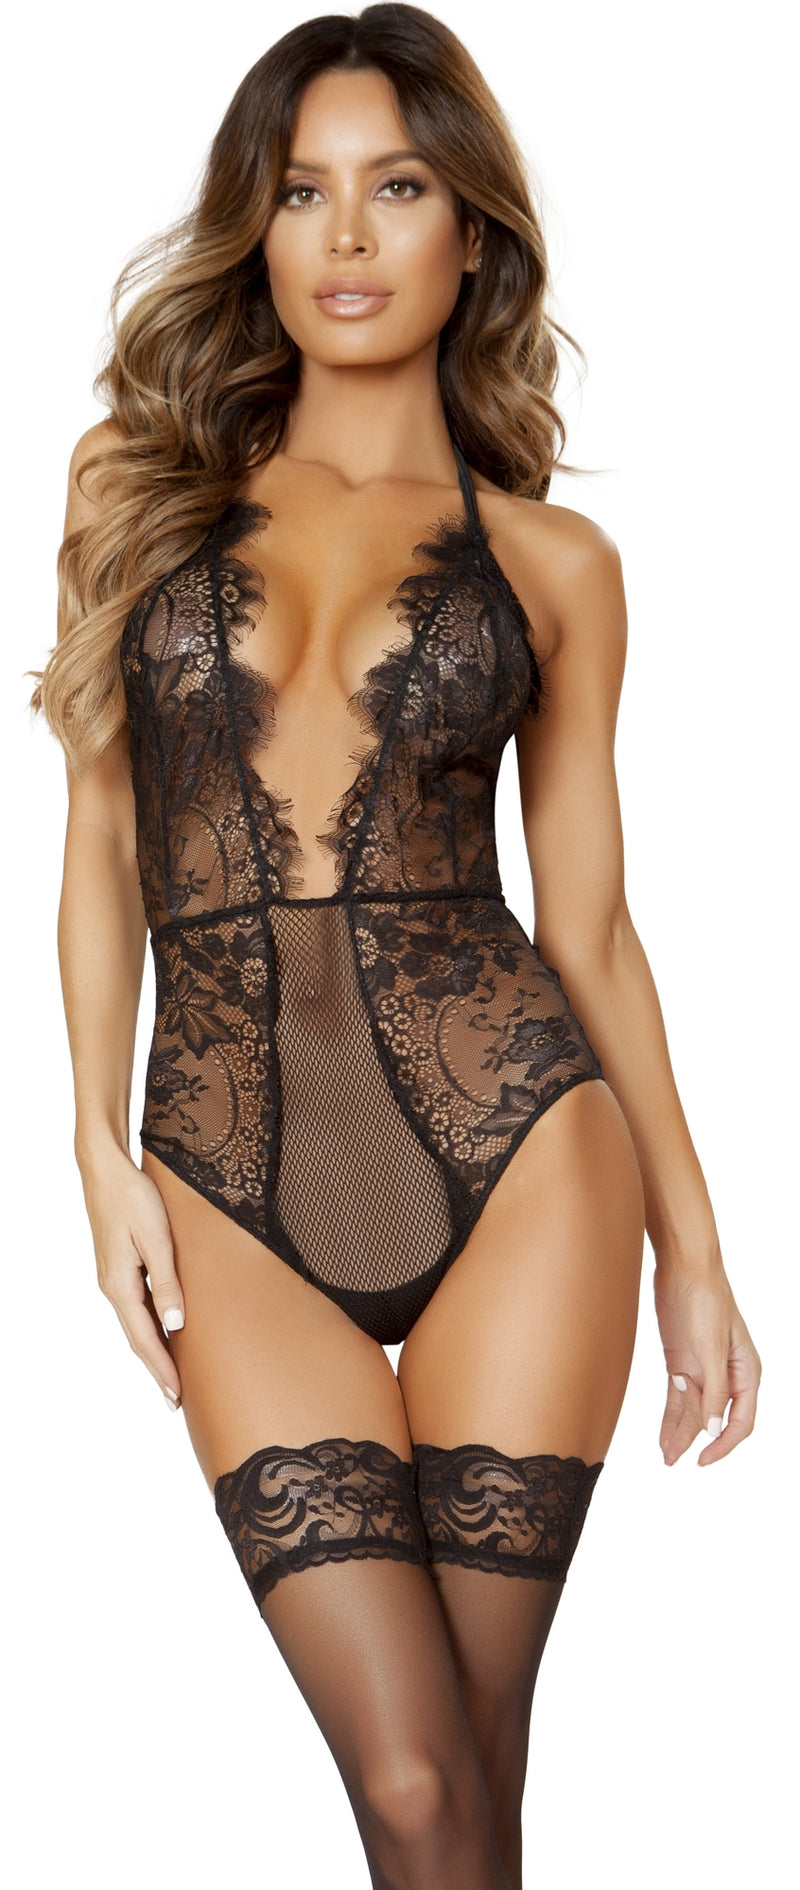 RMLI162 Low cut eyelash halter straps lace teddy main